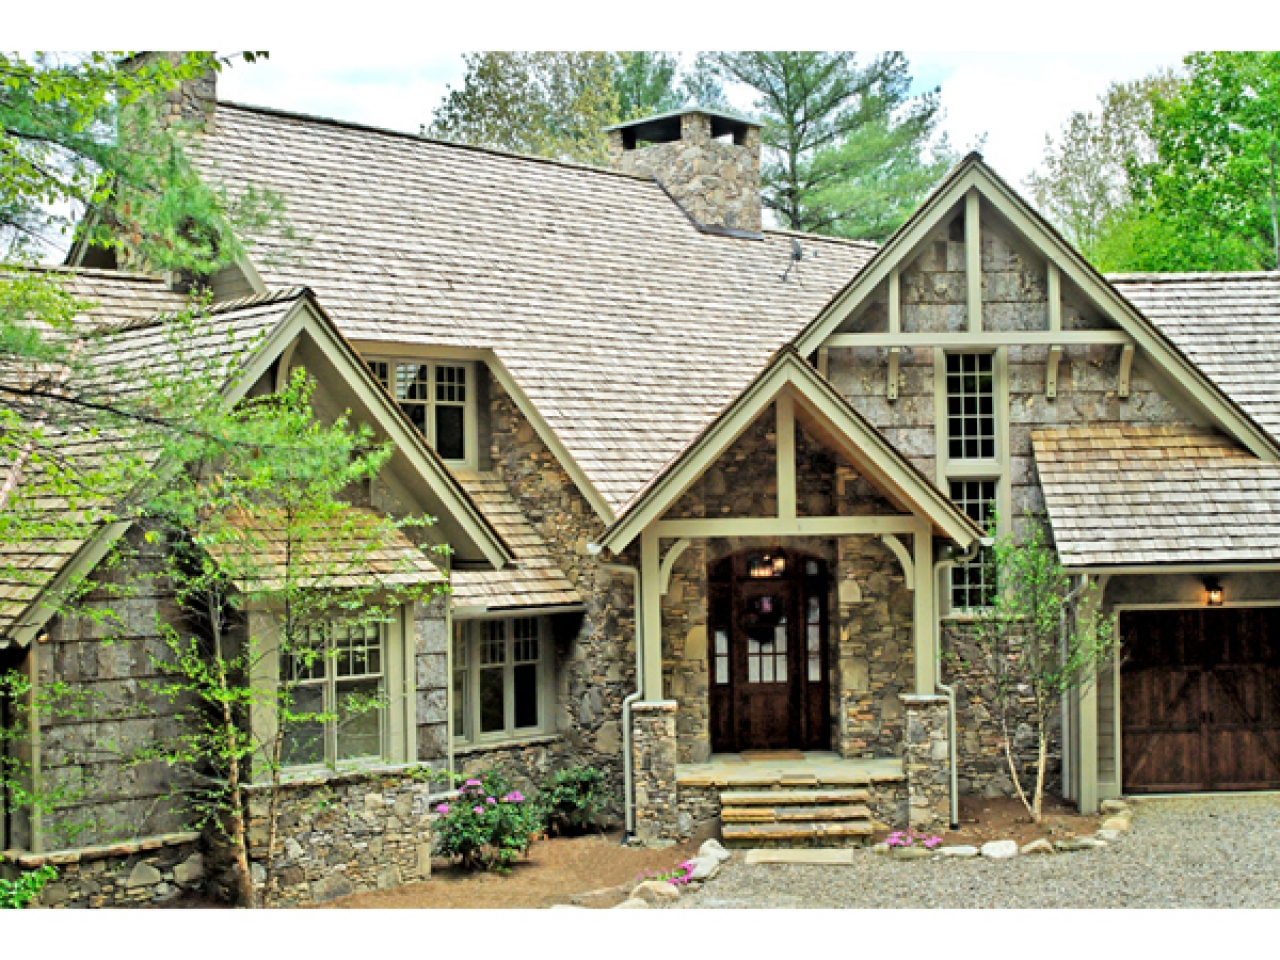 Rustic Mountain Style House Plans House Plans Rustic Homes ...